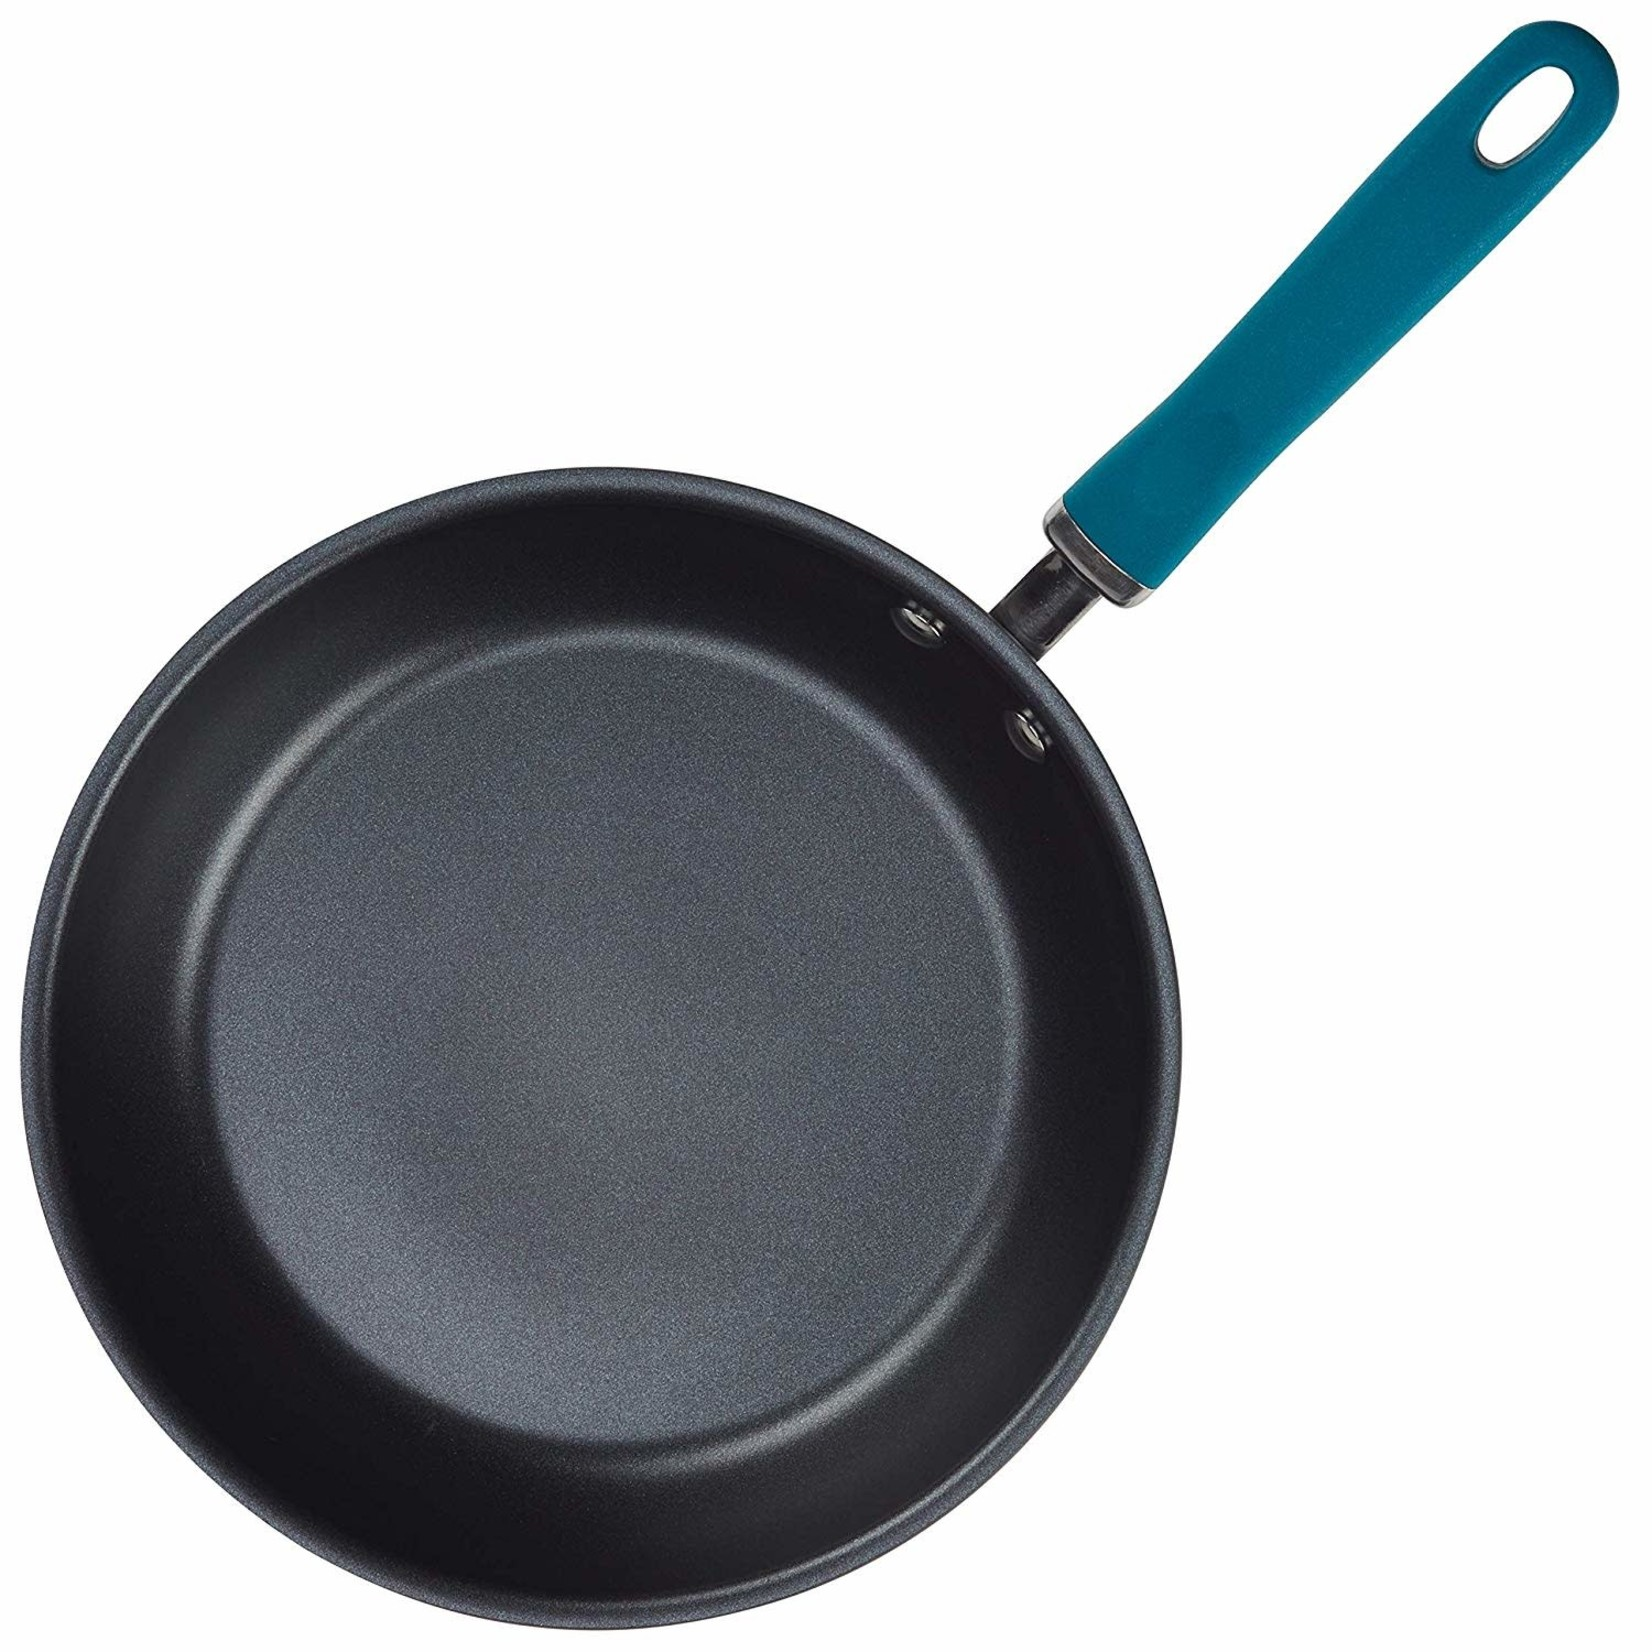 """11.75"""" Rachael Ray Hard Anodized Aluminum Skillet, Gray with Teal Handles"""